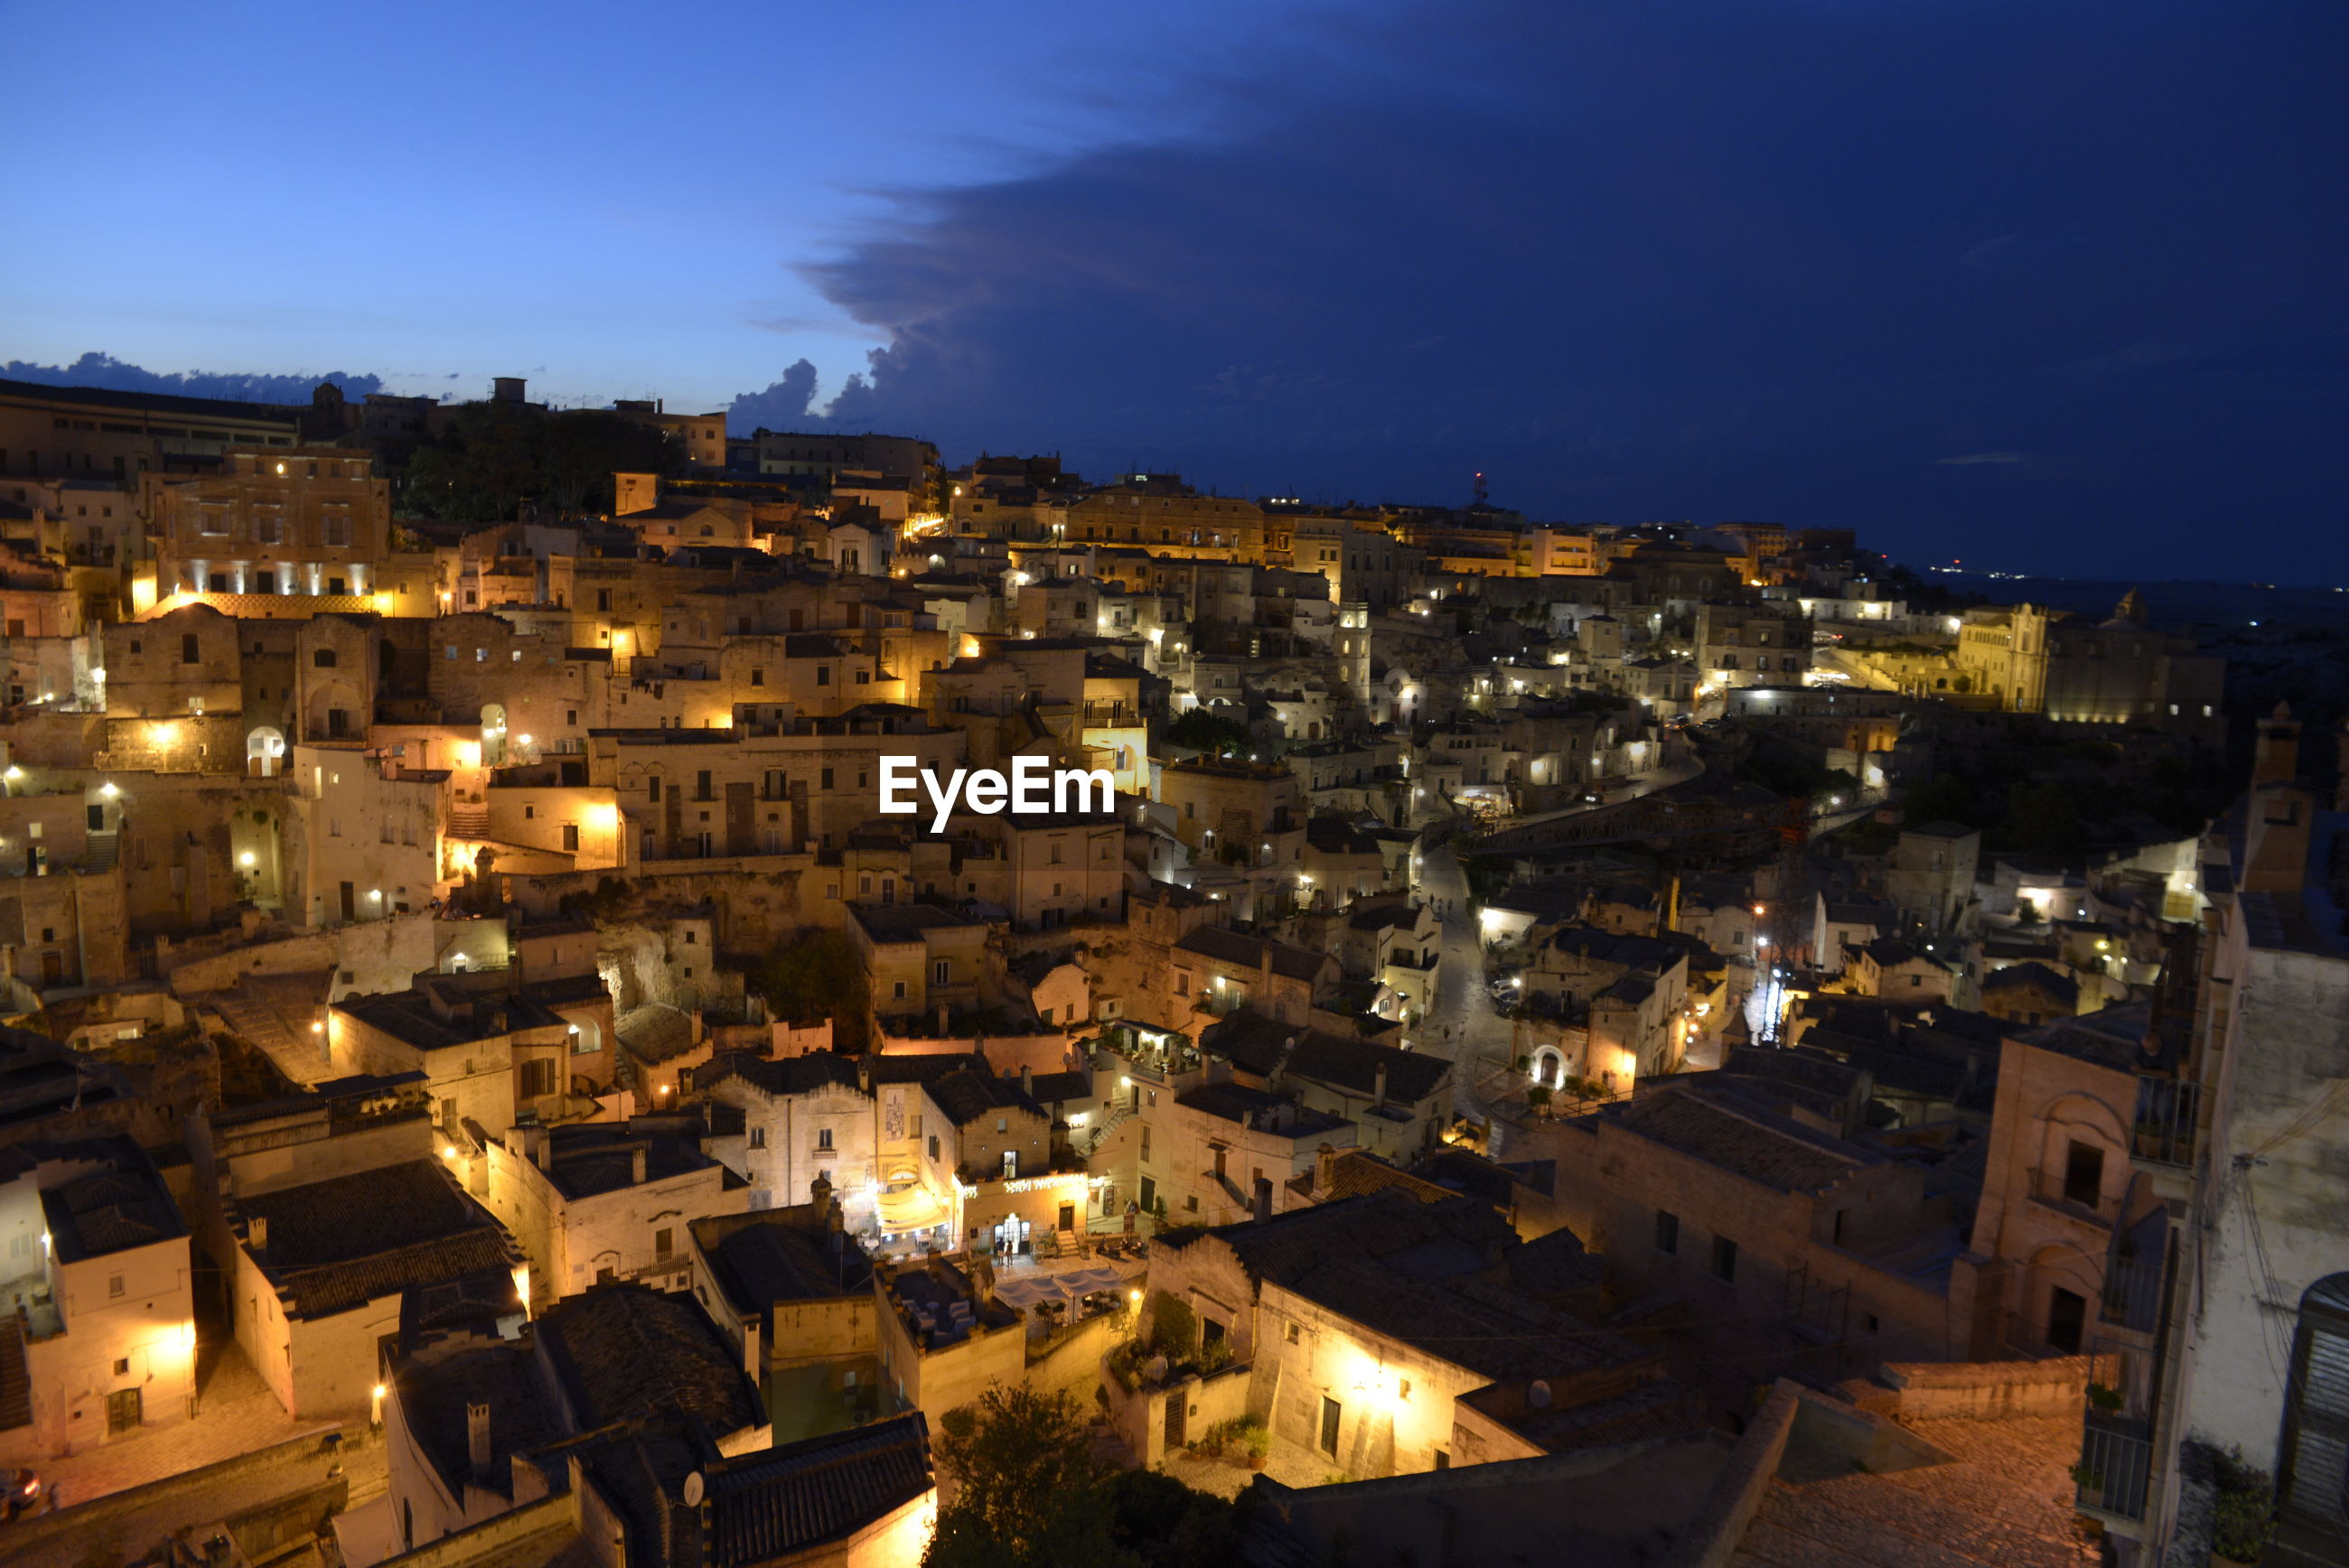 HIGH ANGLE VIEW OF ILLUMINATED TOWNSCAPE AGAINST SKY